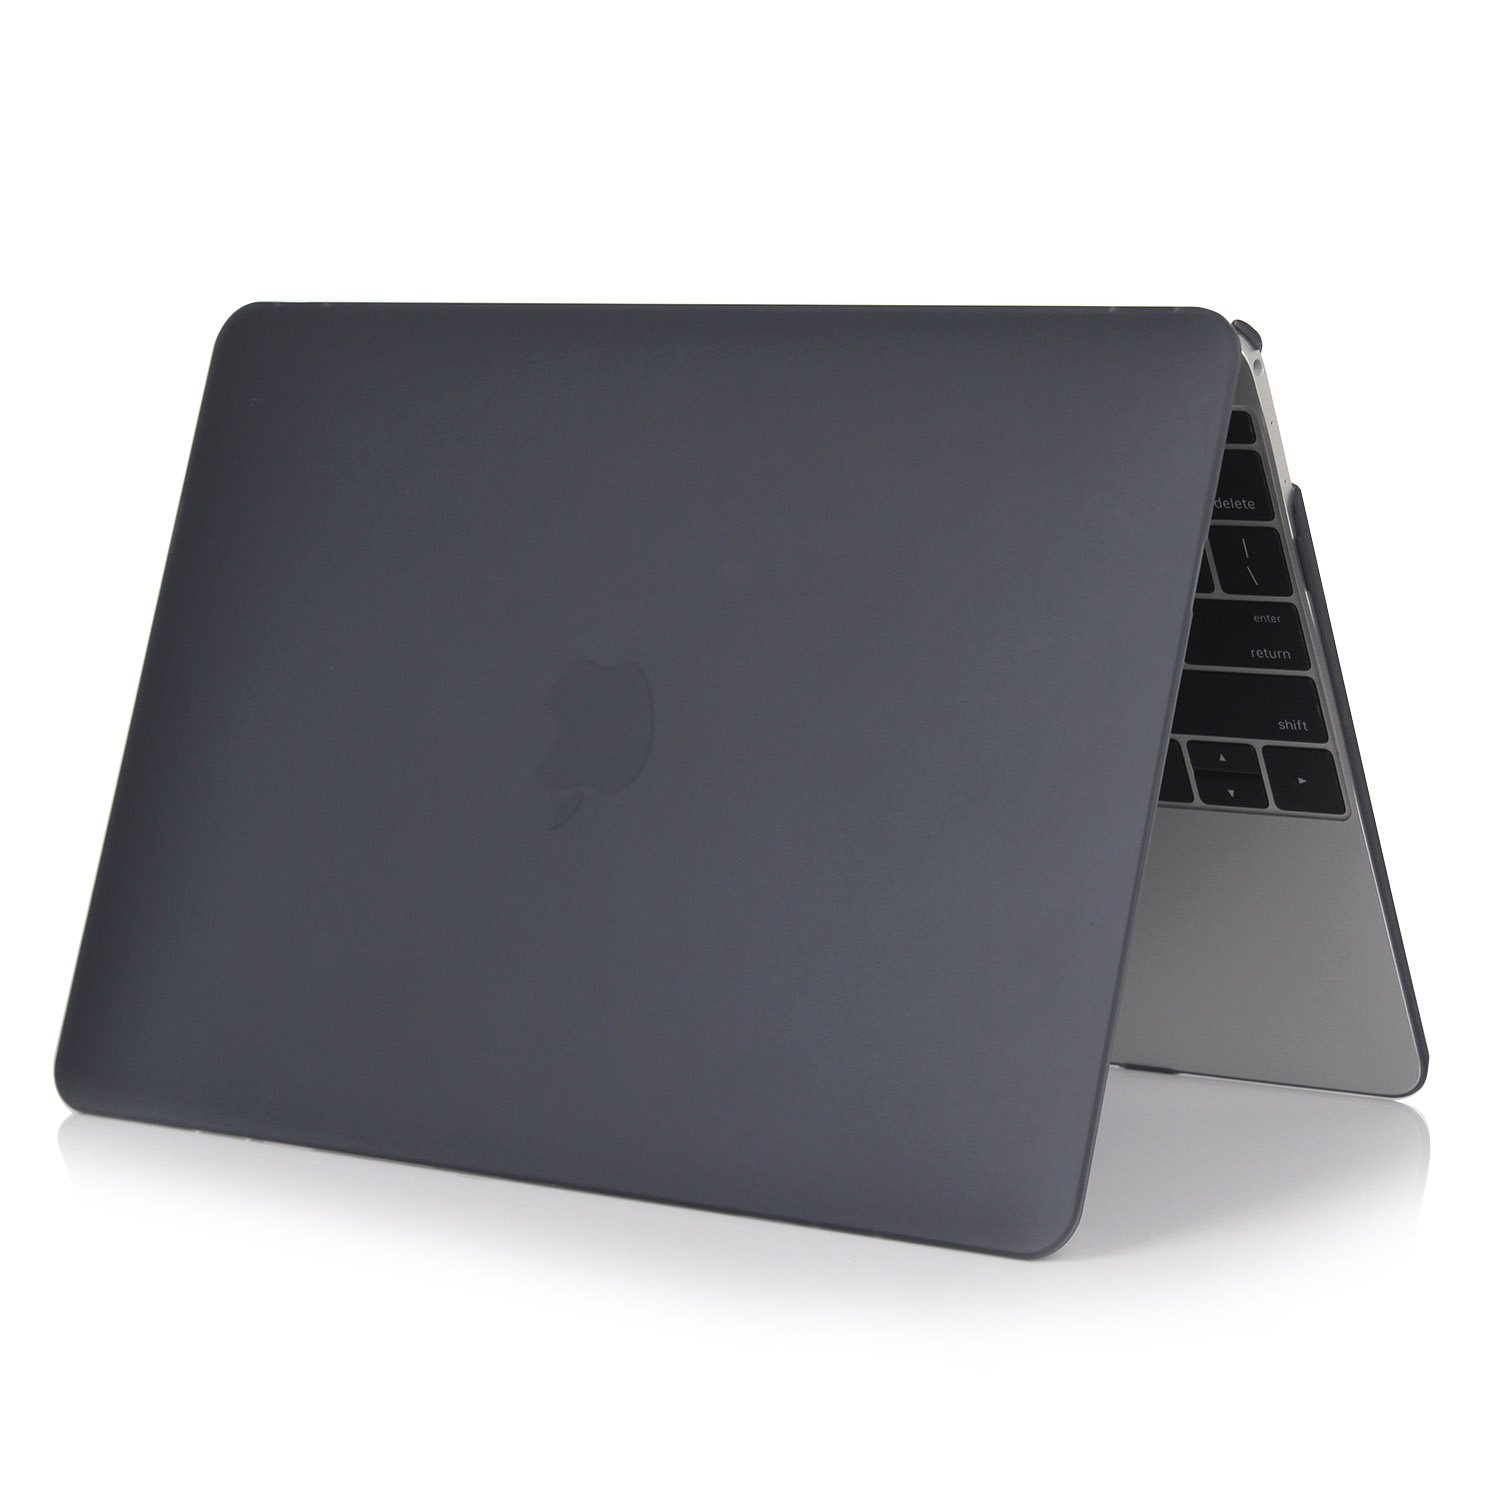 "11.6"" MOSISO BLACK Matte Case for MacBook Air Laptop SERENITY BLUE FAST FREE SHIPPING USA"